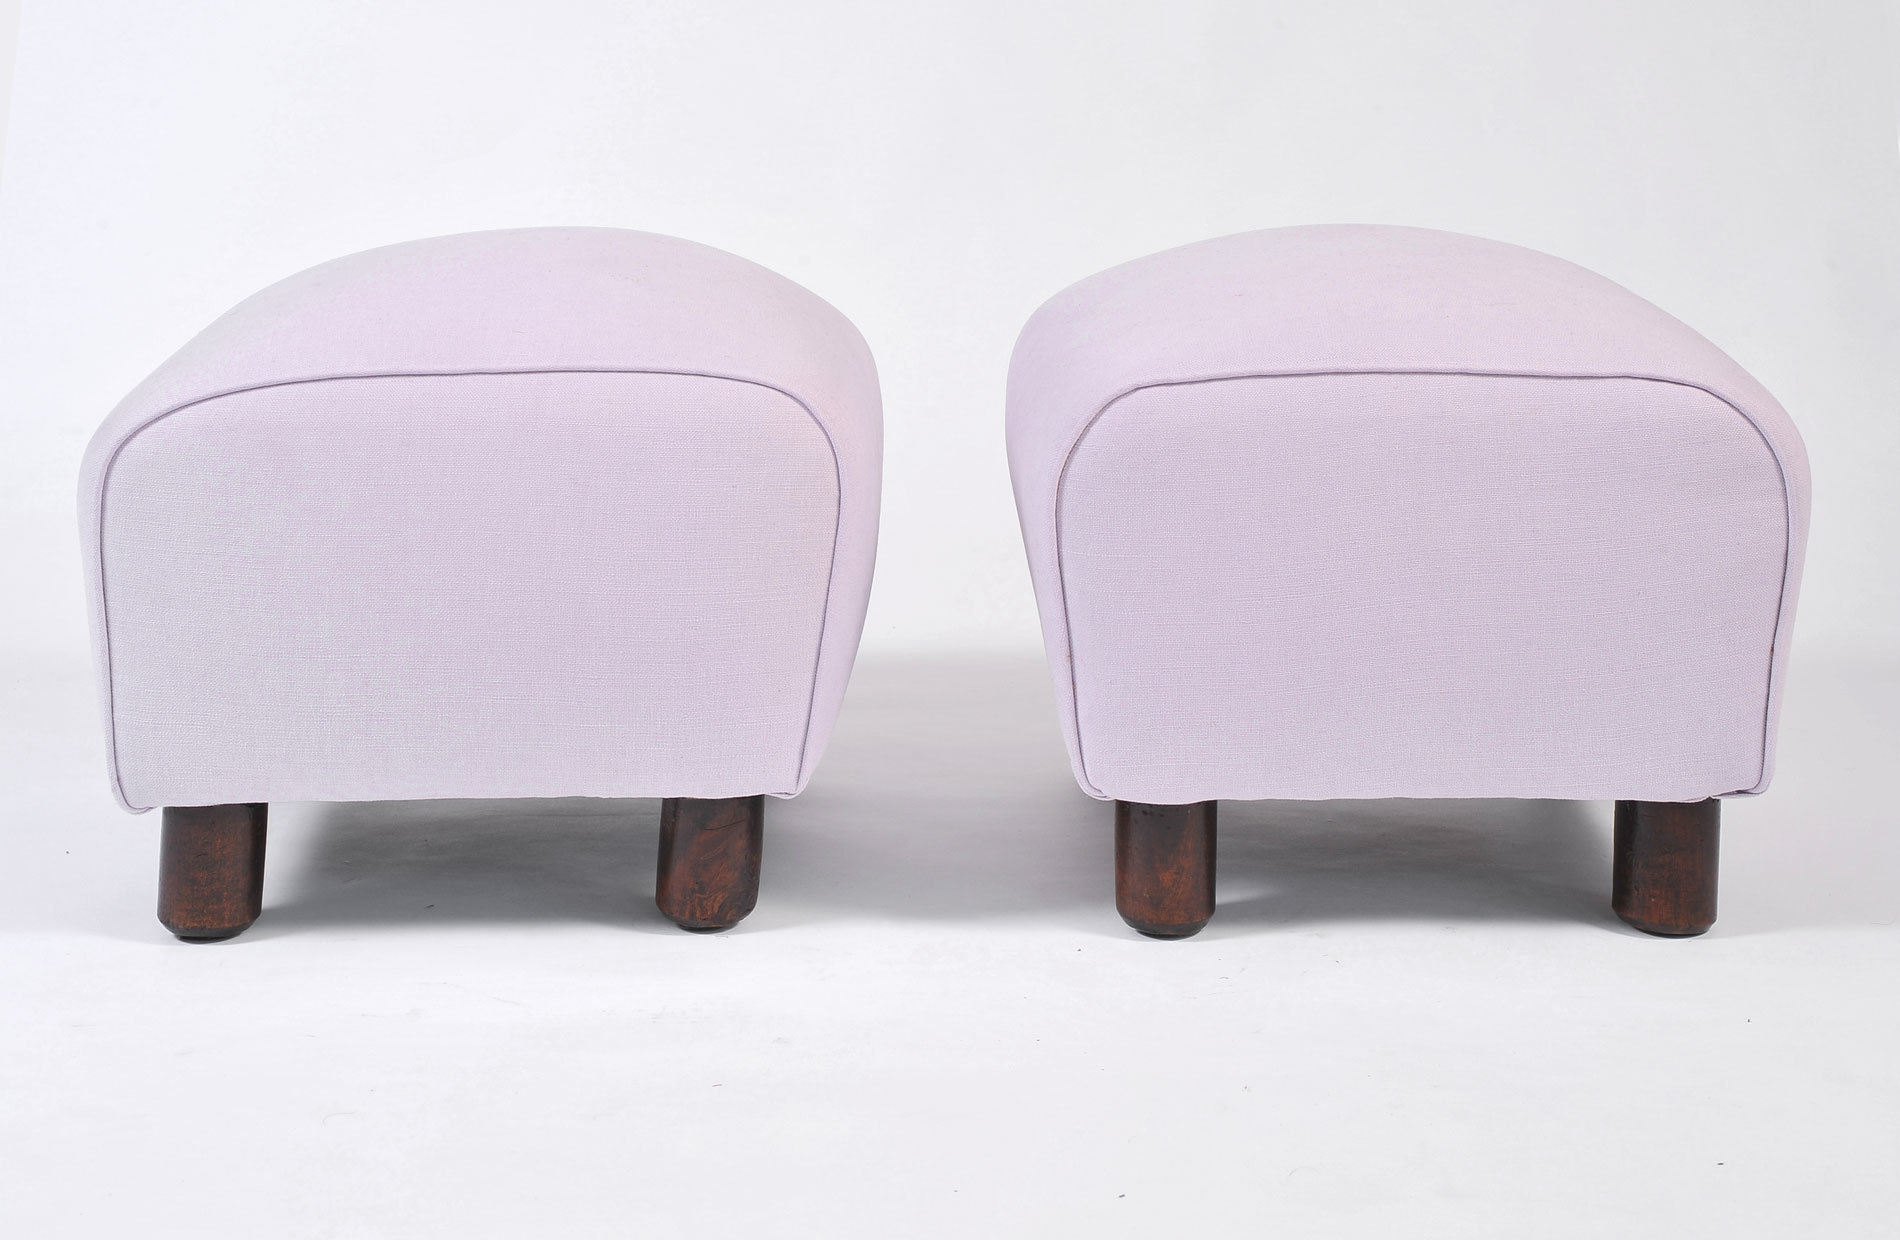 Pair Of Wood Stools In Lilac 03